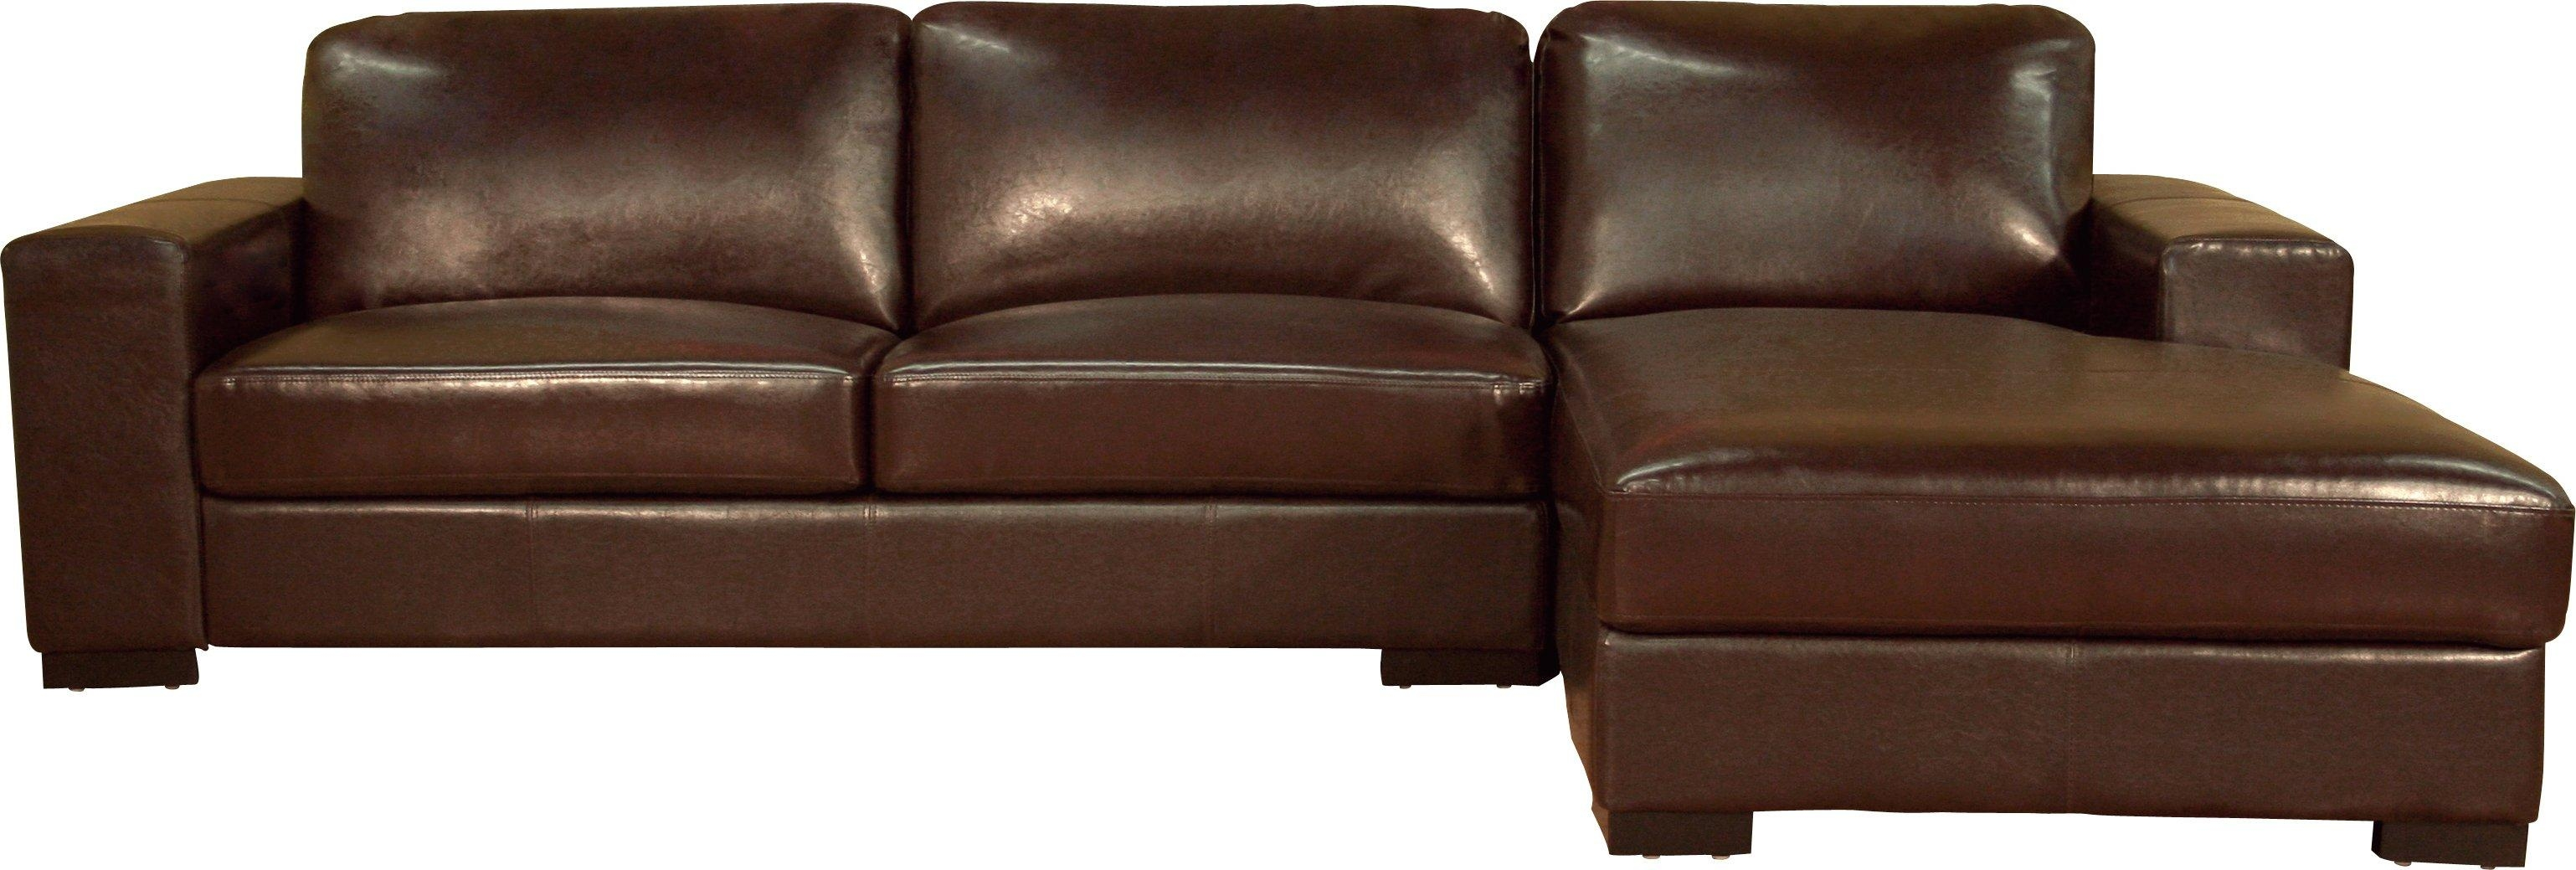 Furniture: Fancy Sleeper Sofa Ikea For Your Best Living Room For Ikea Sectional Sleeper Sofa (View 19 of 20)